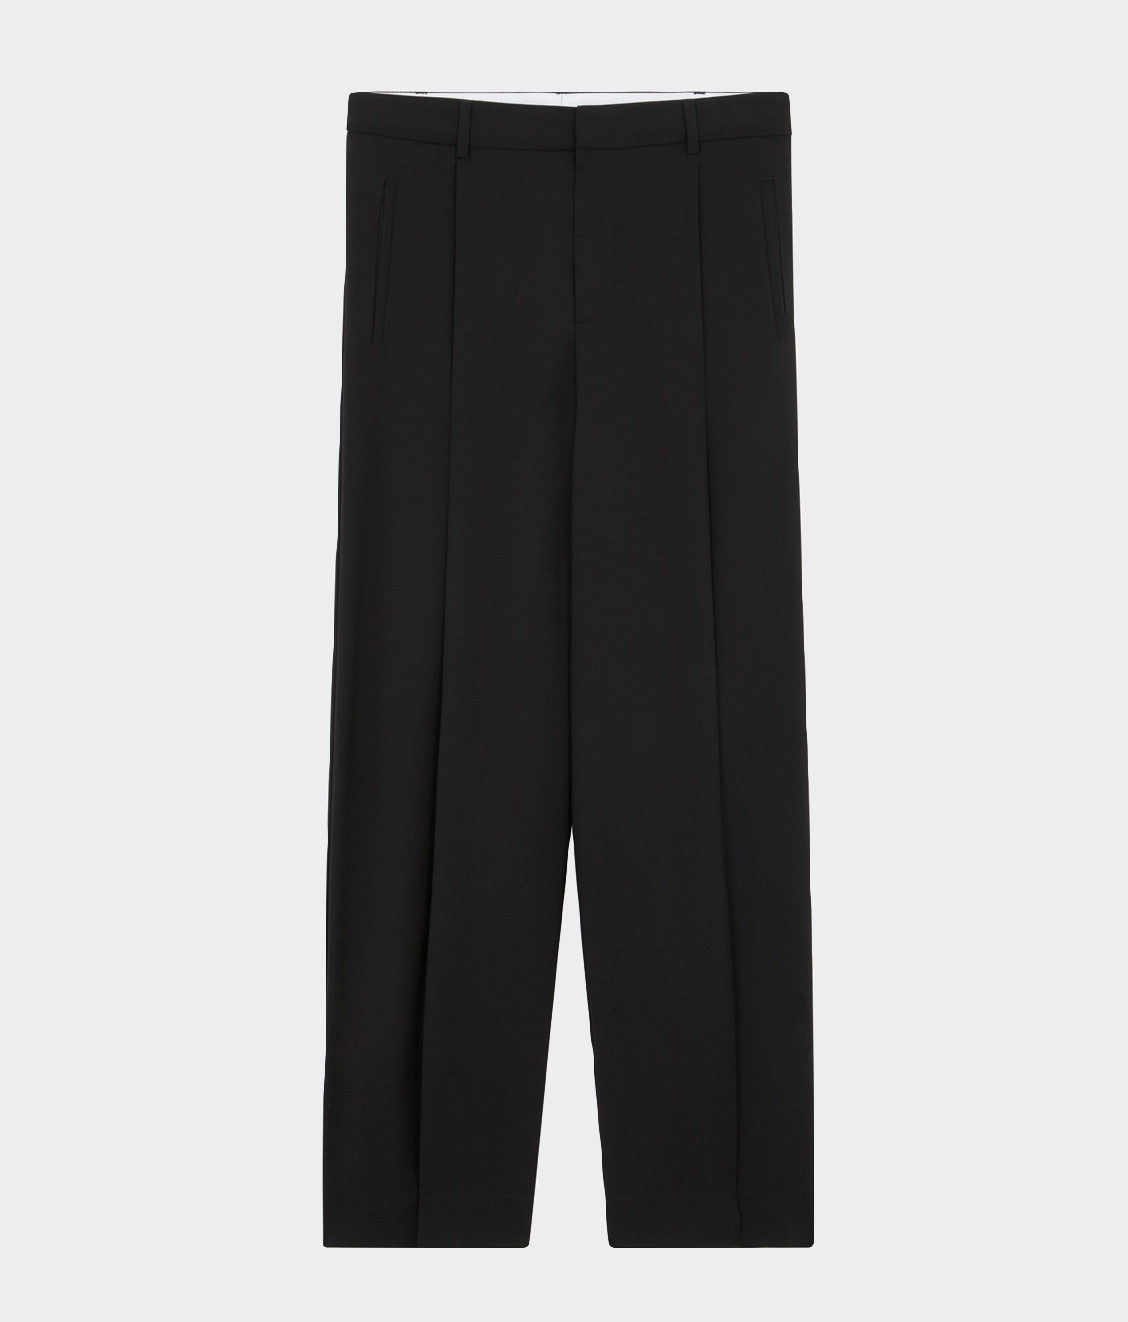 Maison Kitsune Maison Kitsune Single Pleated Pants Black